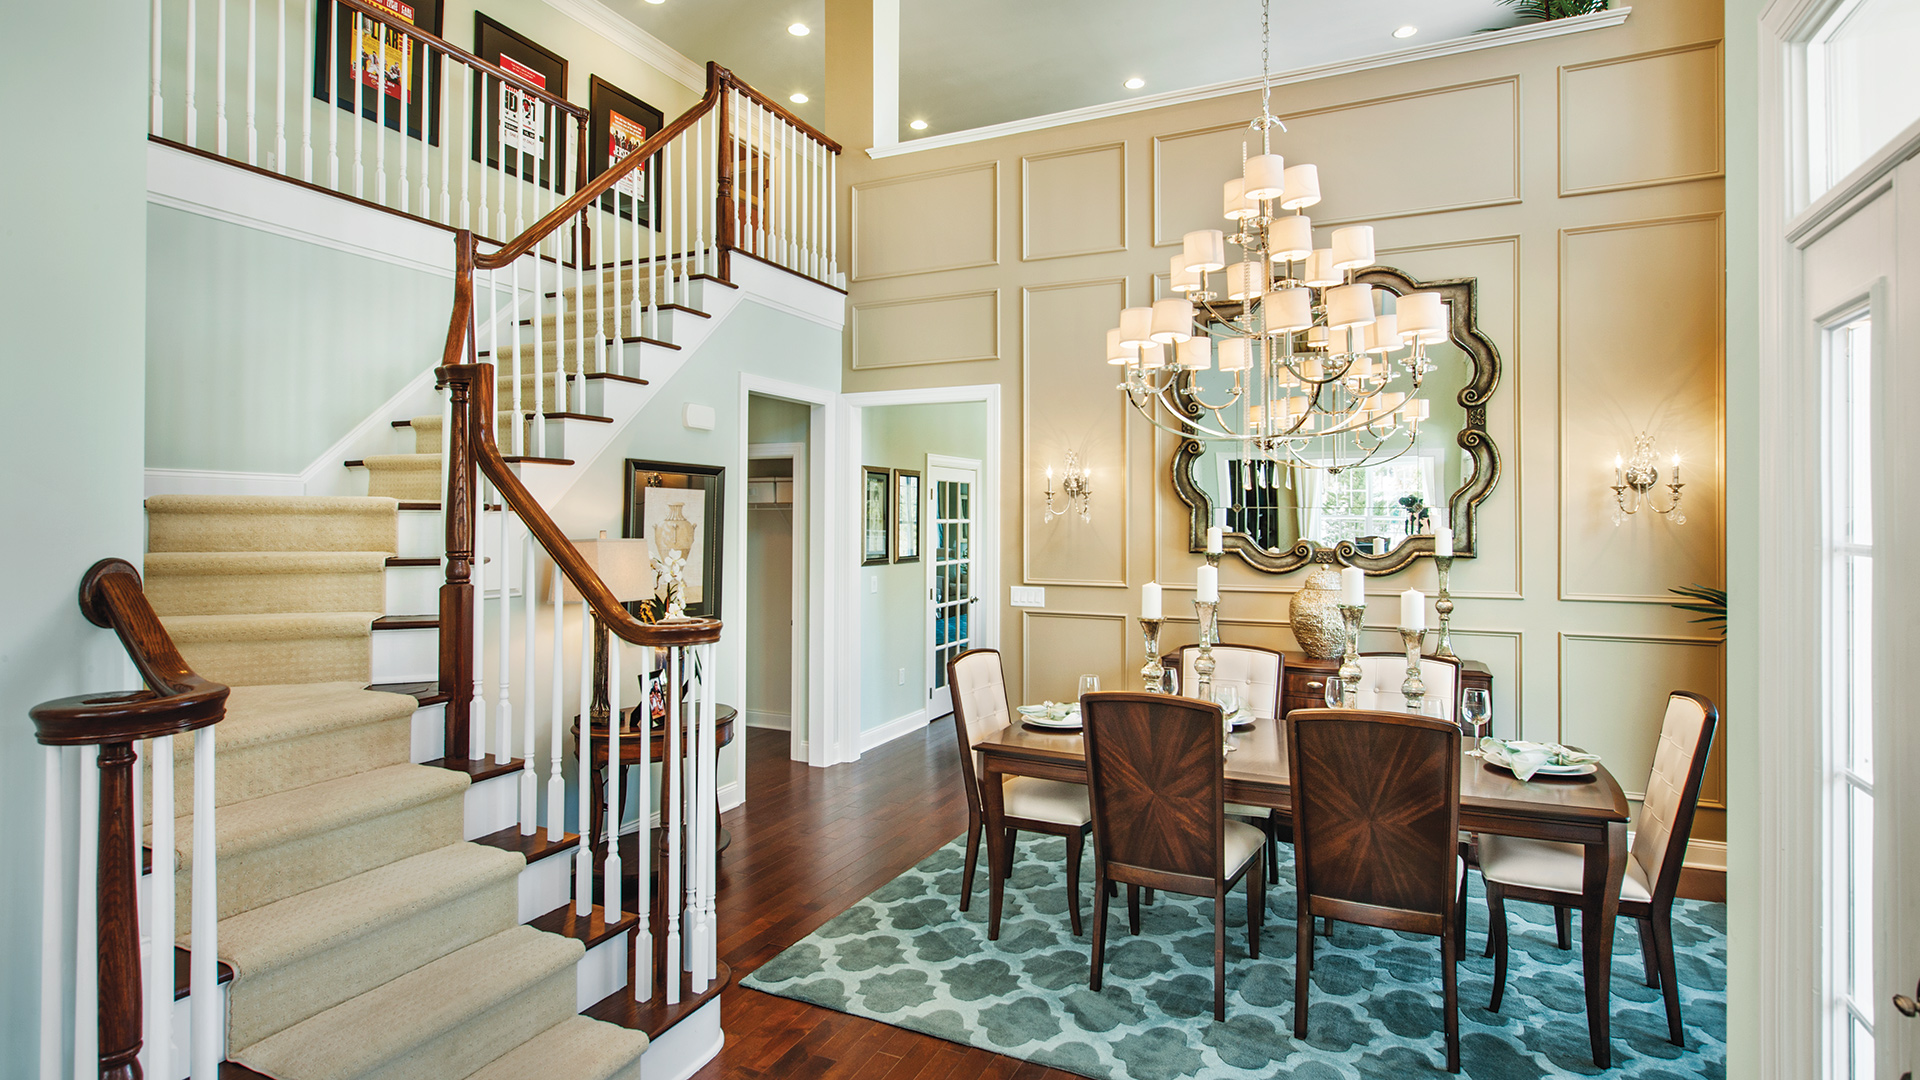 Two Story Foyer And Formal Dining Room